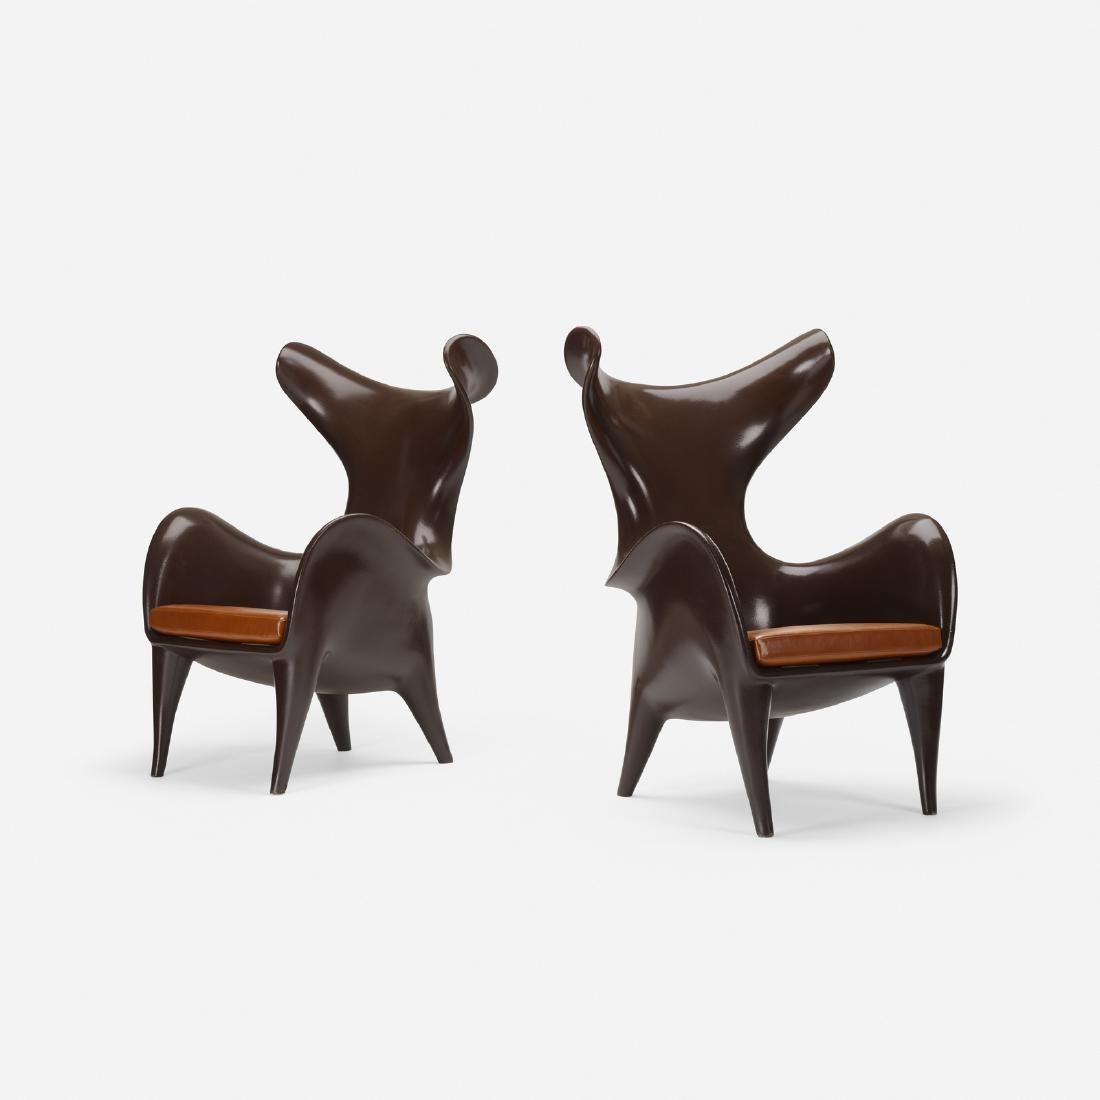 Jordan Mozer, Frankie goes to Houston chairs, pair